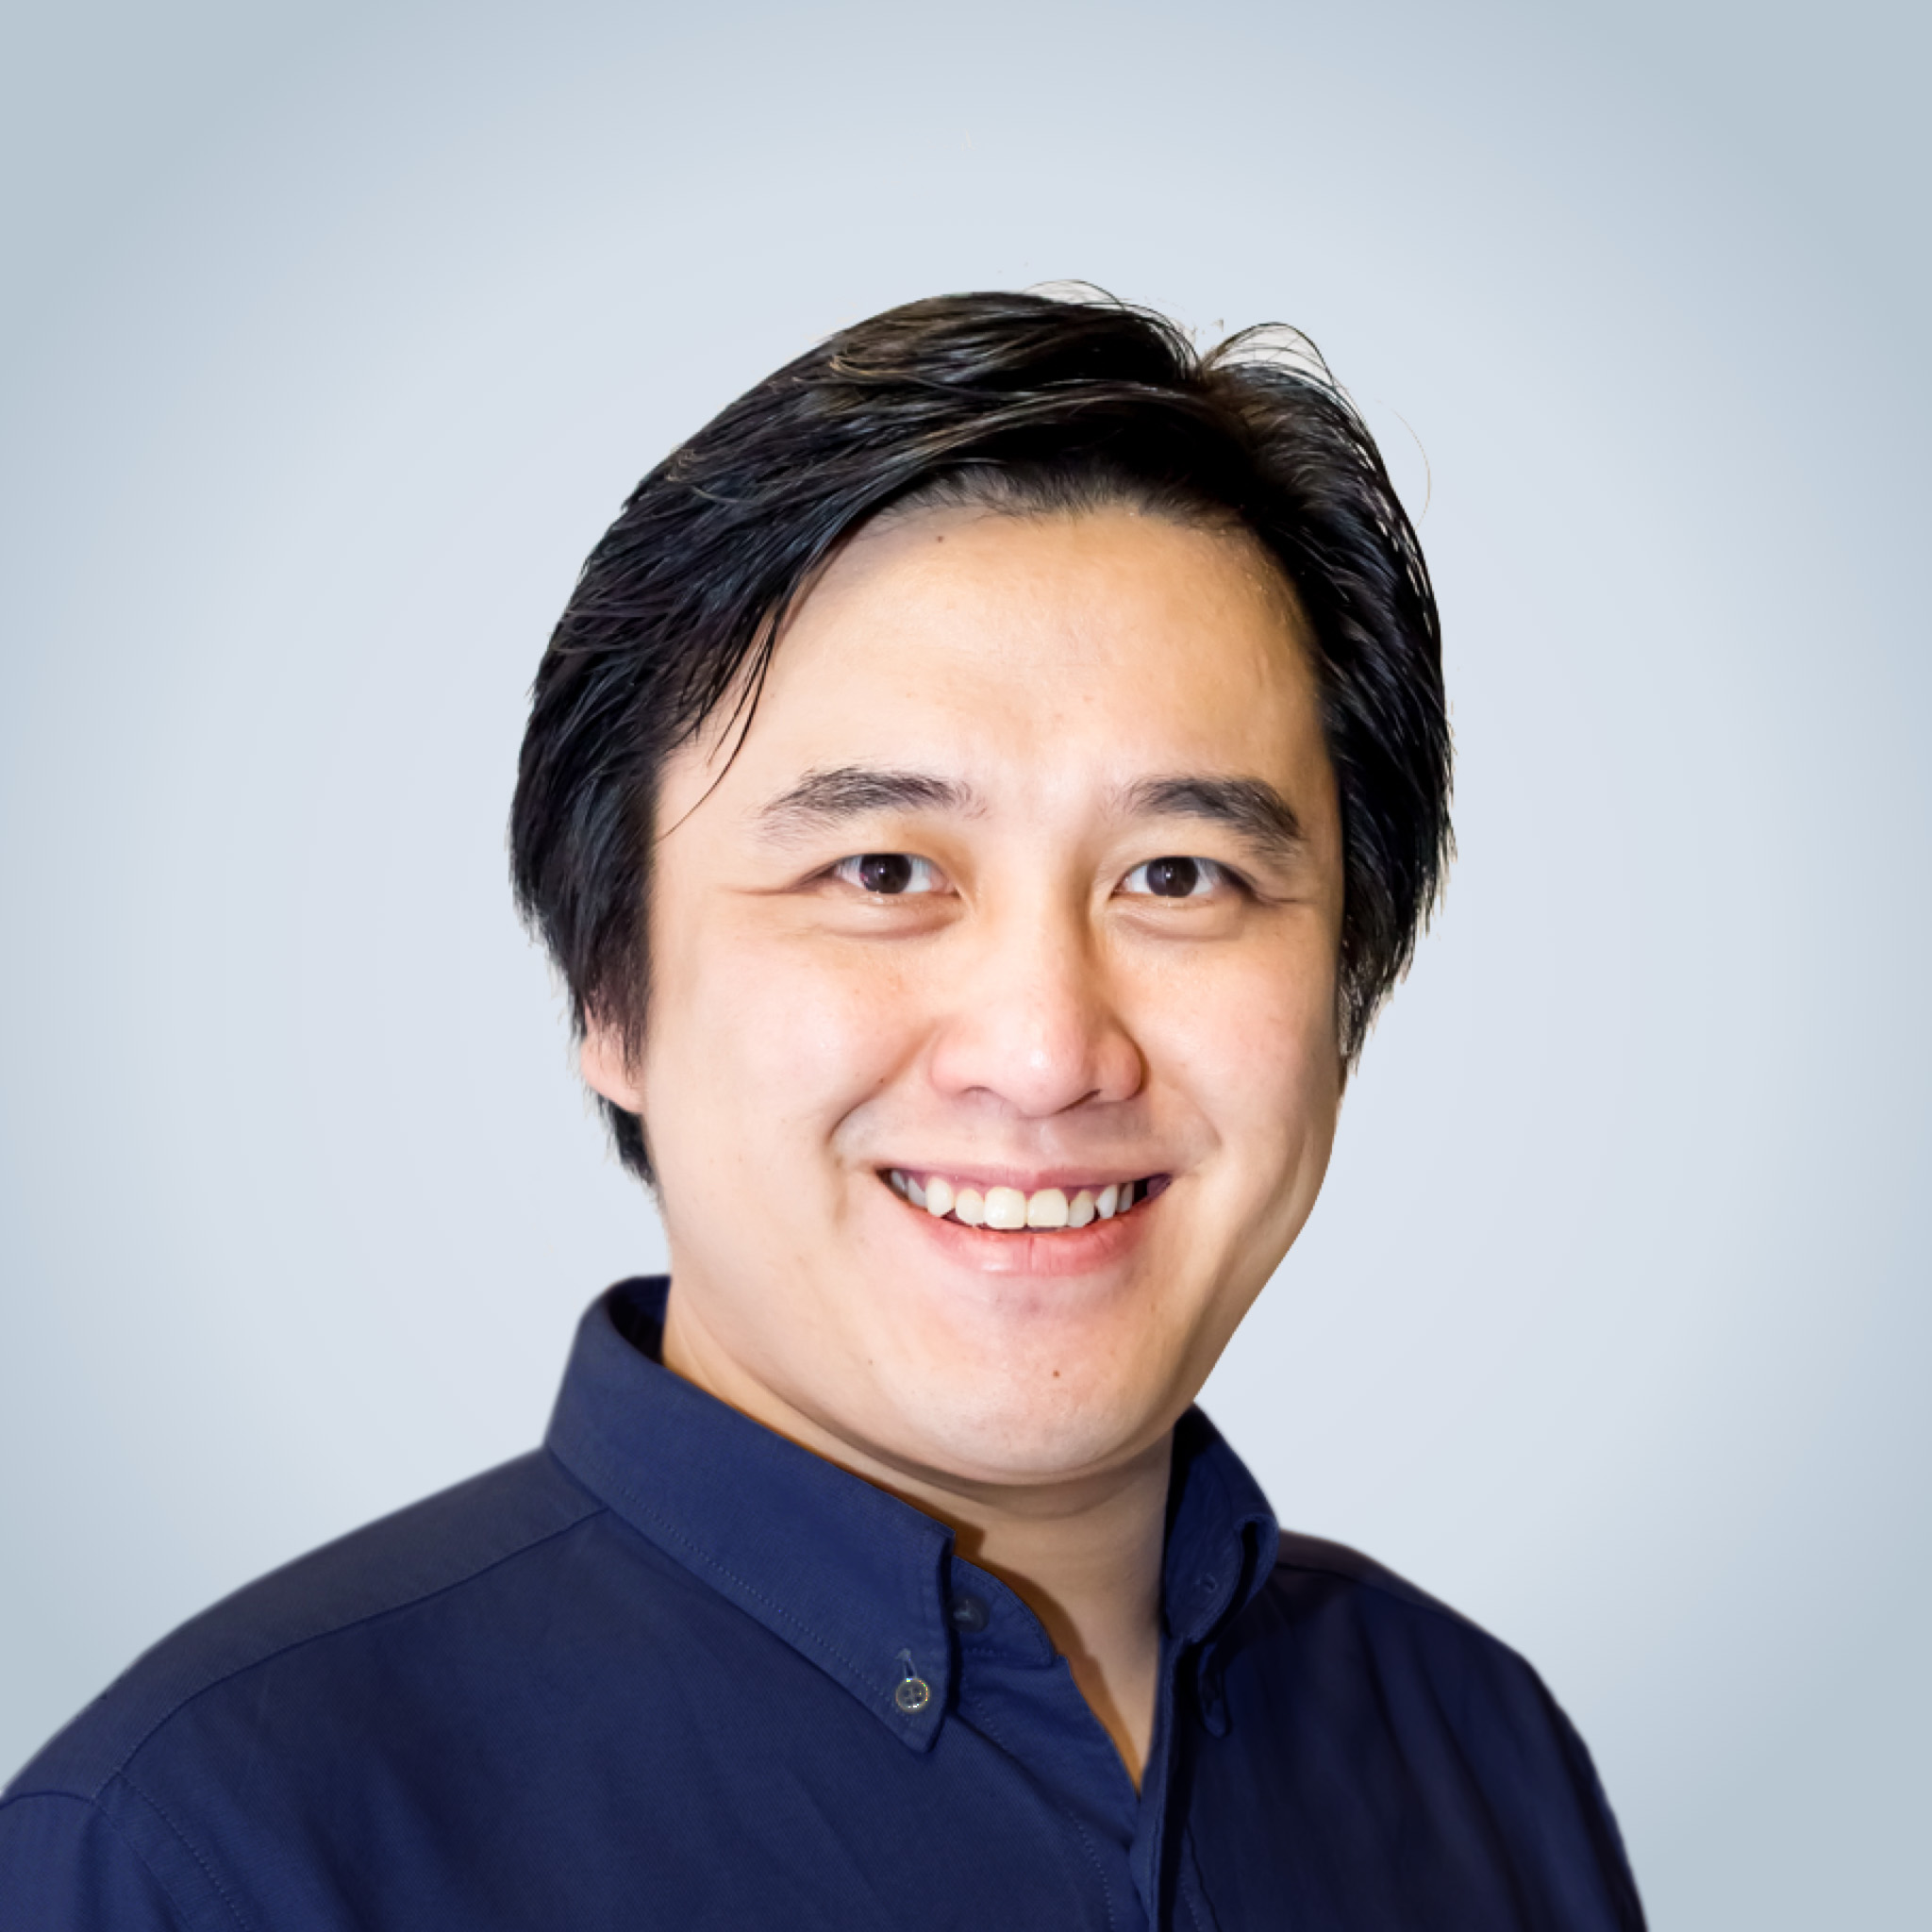 Darius Cheung - Co-Founder & CEO of 99.co